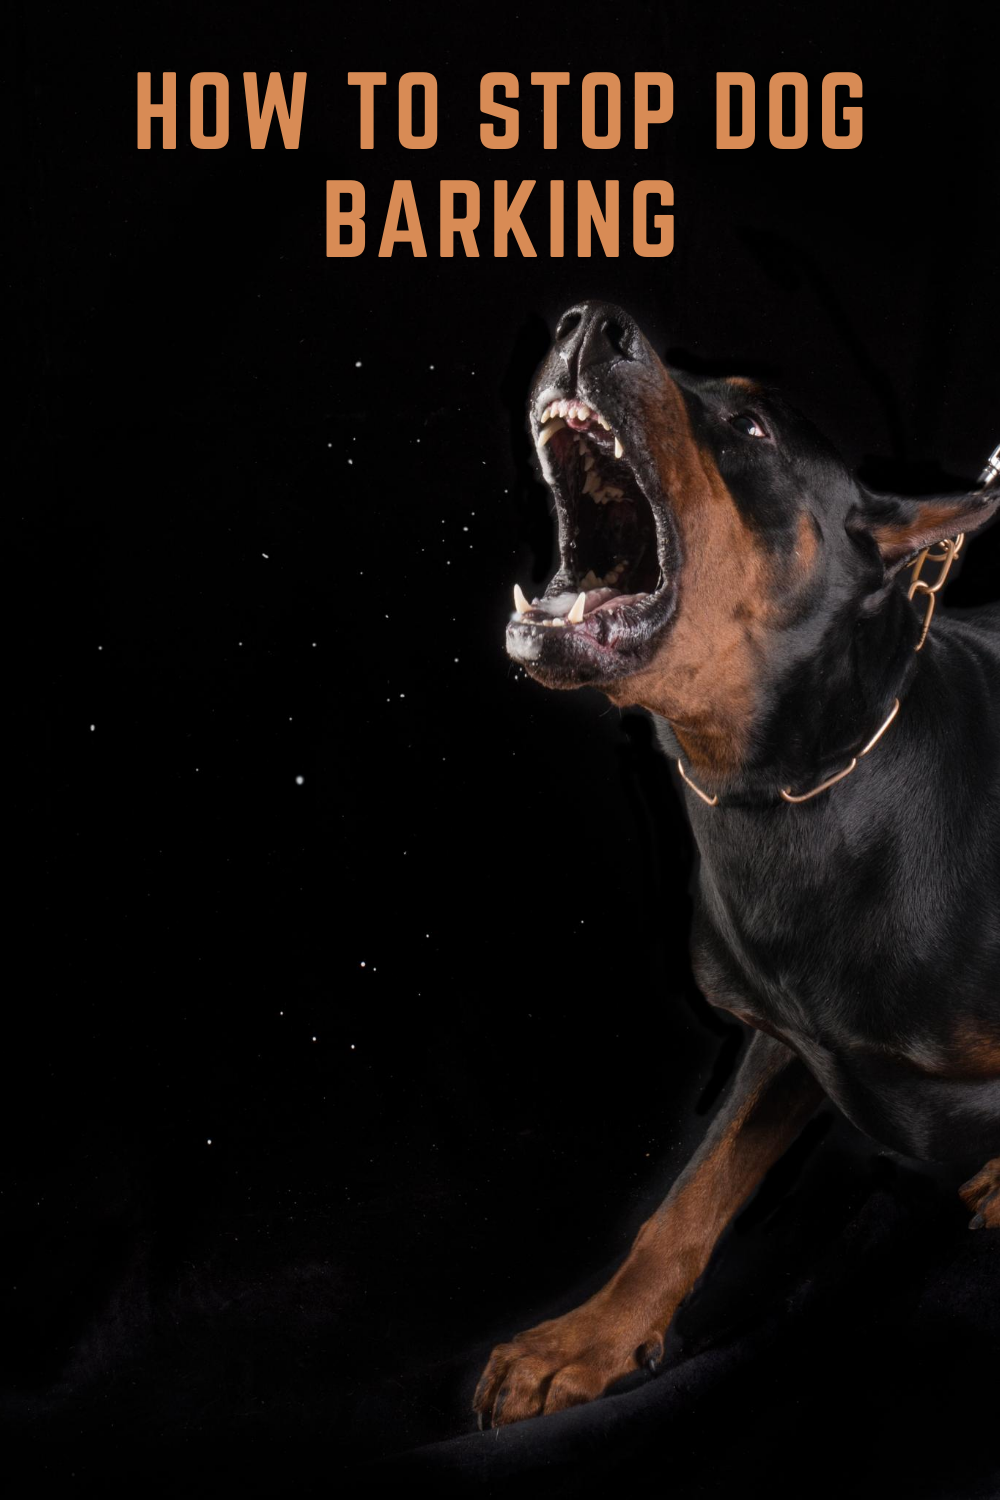 How to Stop Your Dog From Barking Excessively #doglover #dogtraining #doglife #doglover #dogtrainingadvice